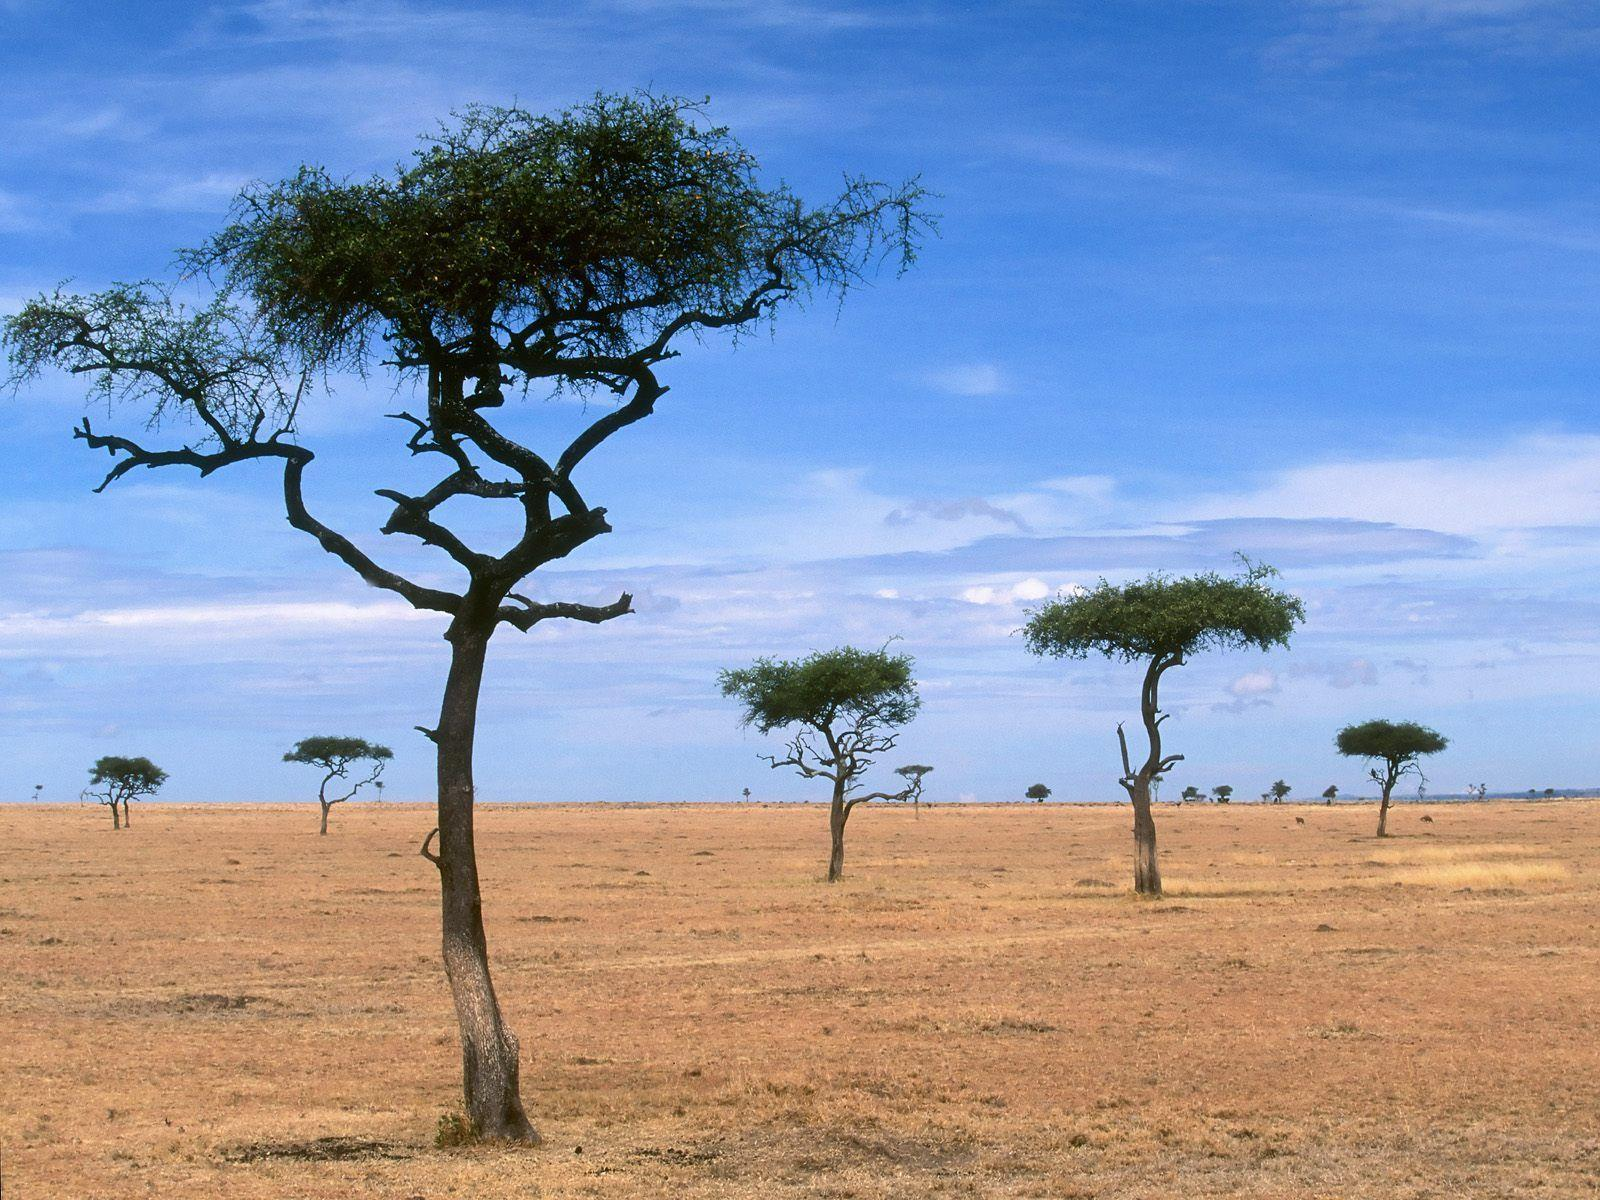 Scattered Acacia Trees / Kenya / Africa wallpapers and image